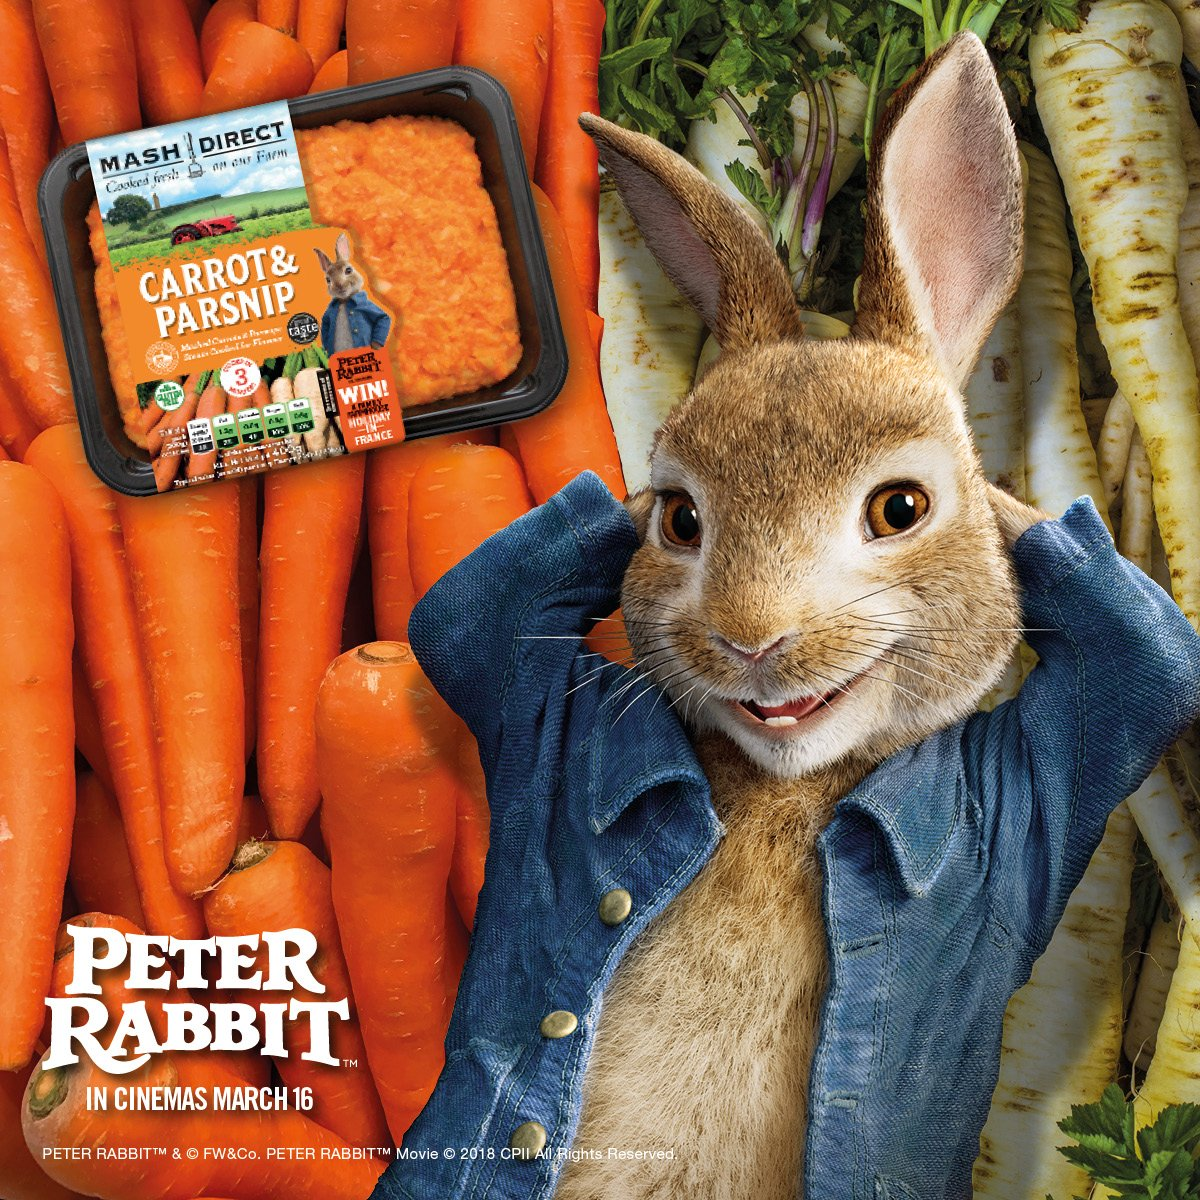 Peter Rabbit 🐰 🥕 has been causing mischief on our Farm! 🚜 Look out for our Peter Rabbit packs for the chance to 🎉 #WIN a Family Farmhouse Holiday in France! 🎉 Pick up a packet and enter our #Competition now https://t.co/20kAfGO34w    🐰 🥕 #peterrabbitmovie